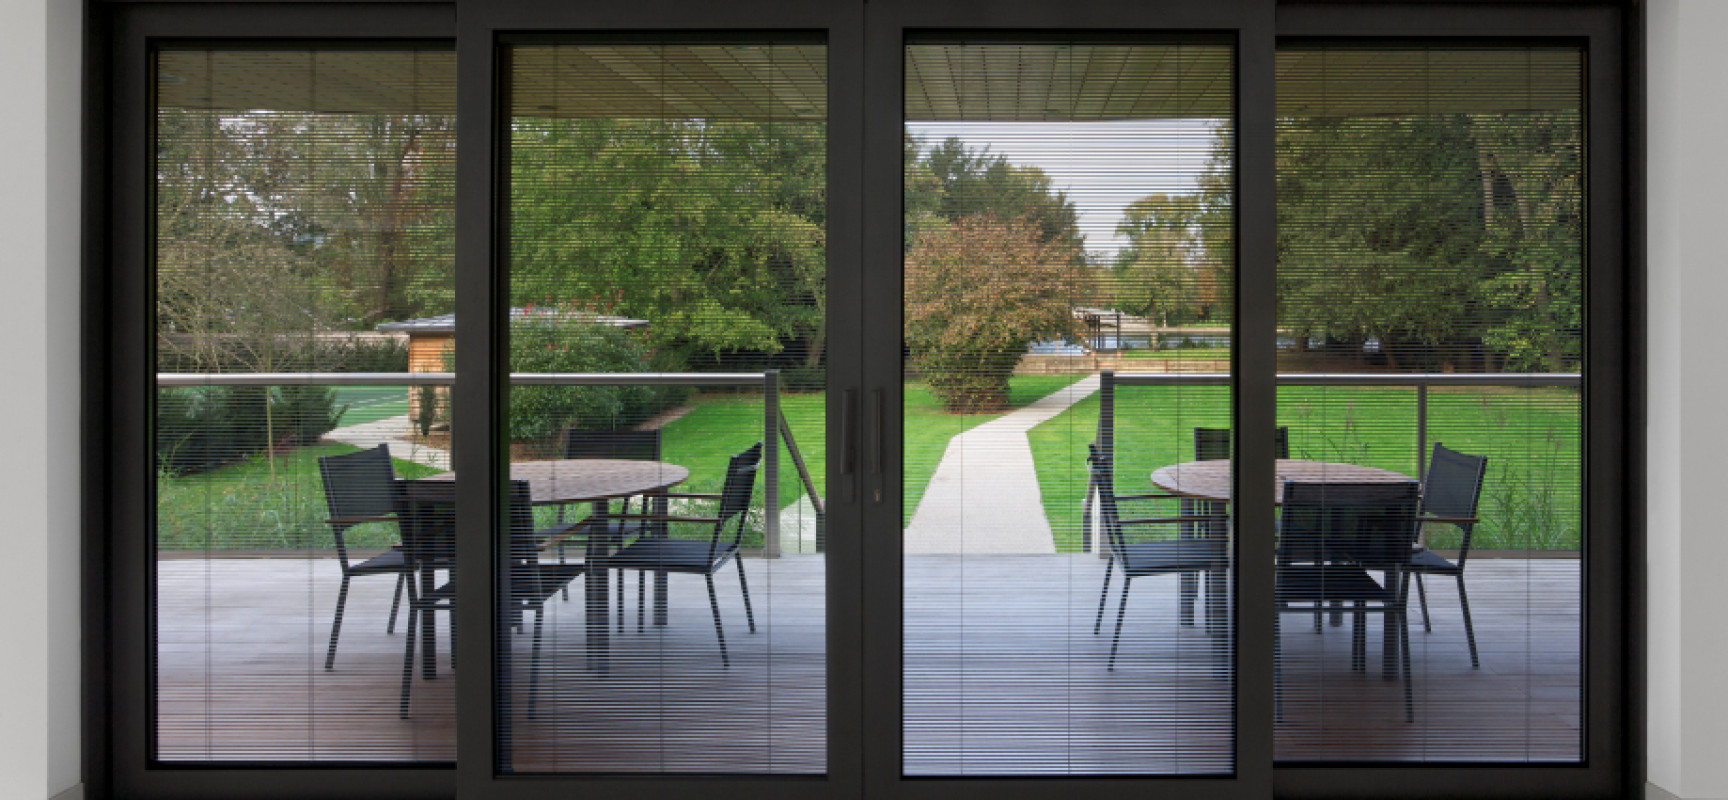 Five benefits of having patio doors over bi-folding models